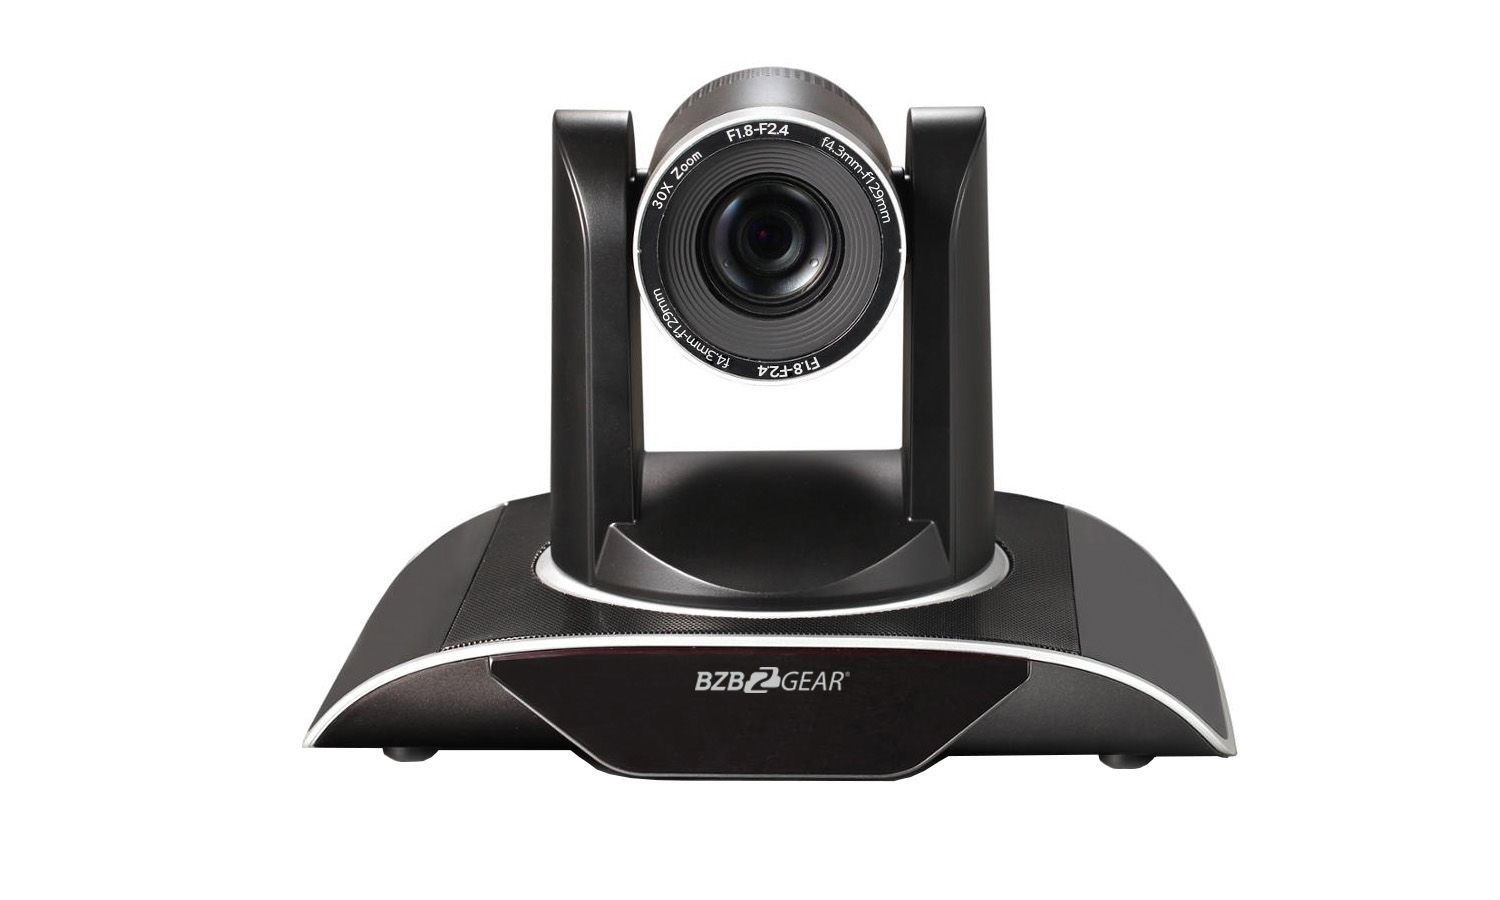 BG-BPTZ-30XHUHR PTZ 30X Zoom Full HD USB 2.0/3.0 HDMI RS232 Live Streaming Camera by BZBGEAR